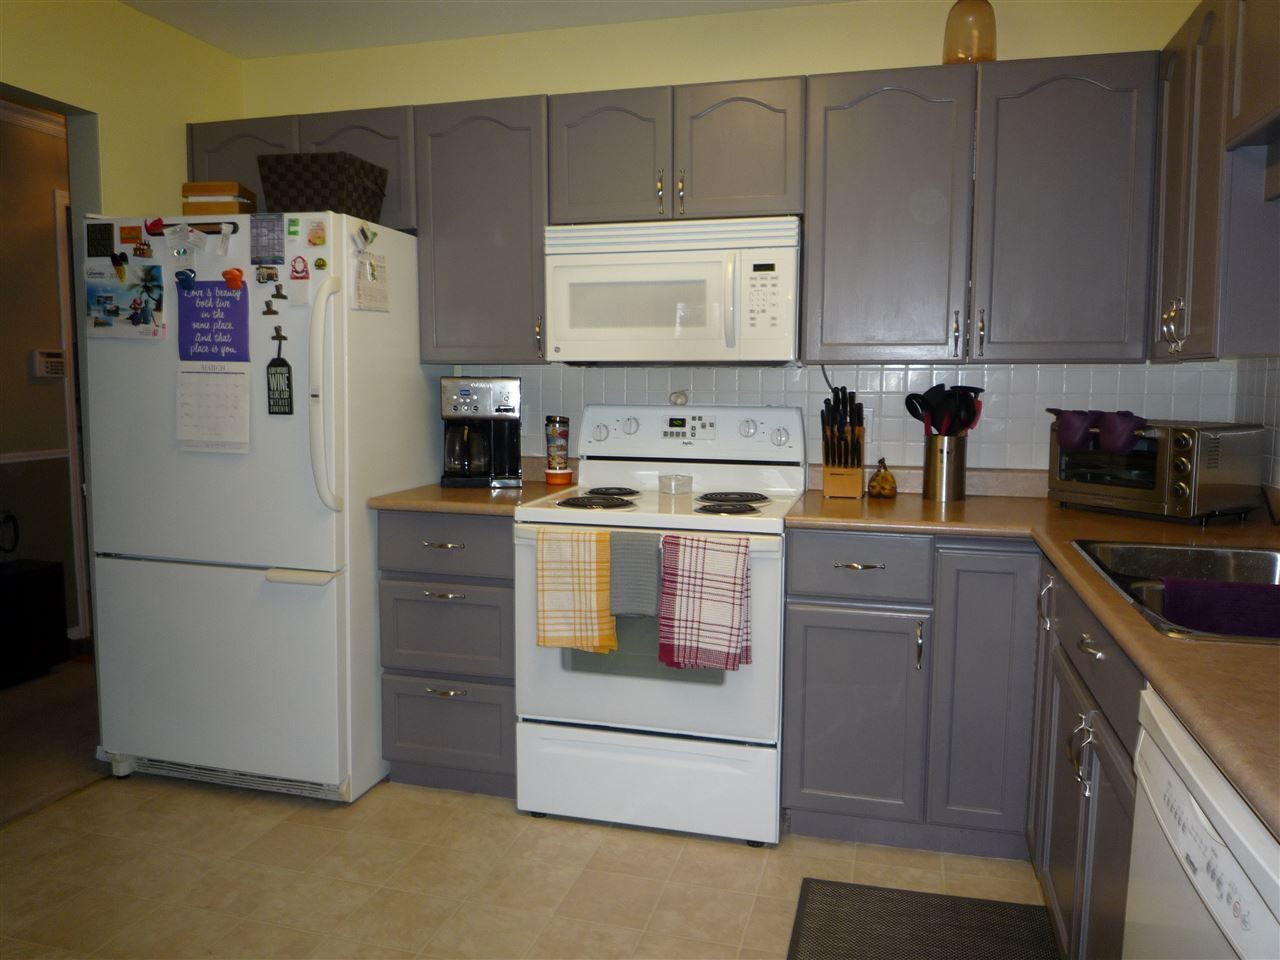 """Photo 9: Photos: 104 9400 COOK Street in Chilliwack: Chilliwack N Yale-Well Condo for sale in """"THE WELLINGTON"""" : MLS®# R2076679"""